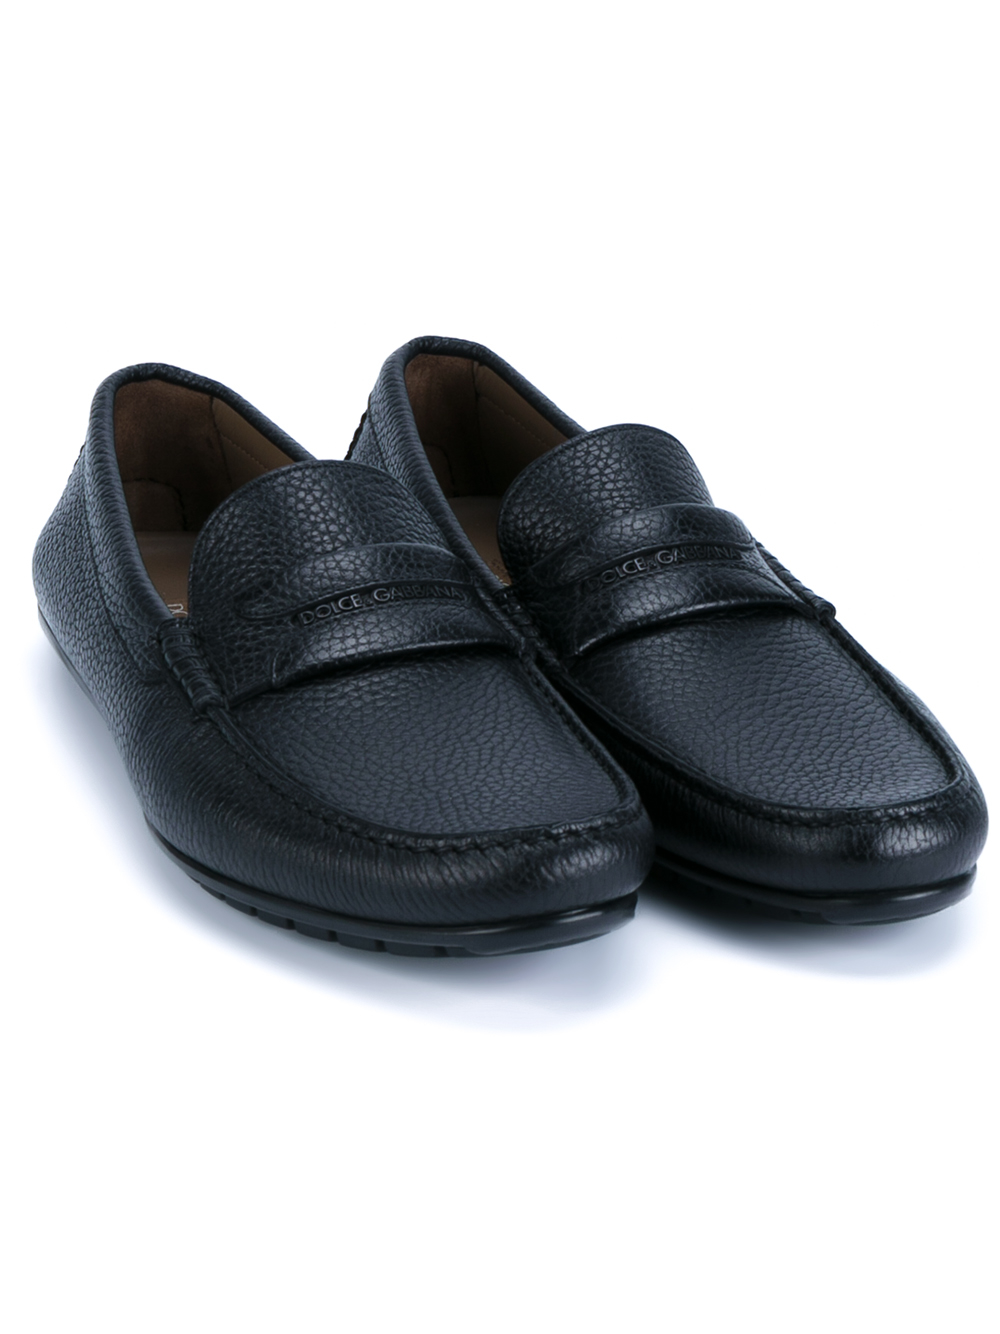 832df0033d5 Lyst - Dolce   Gabbana Leather Driving Loafers in Black for Men